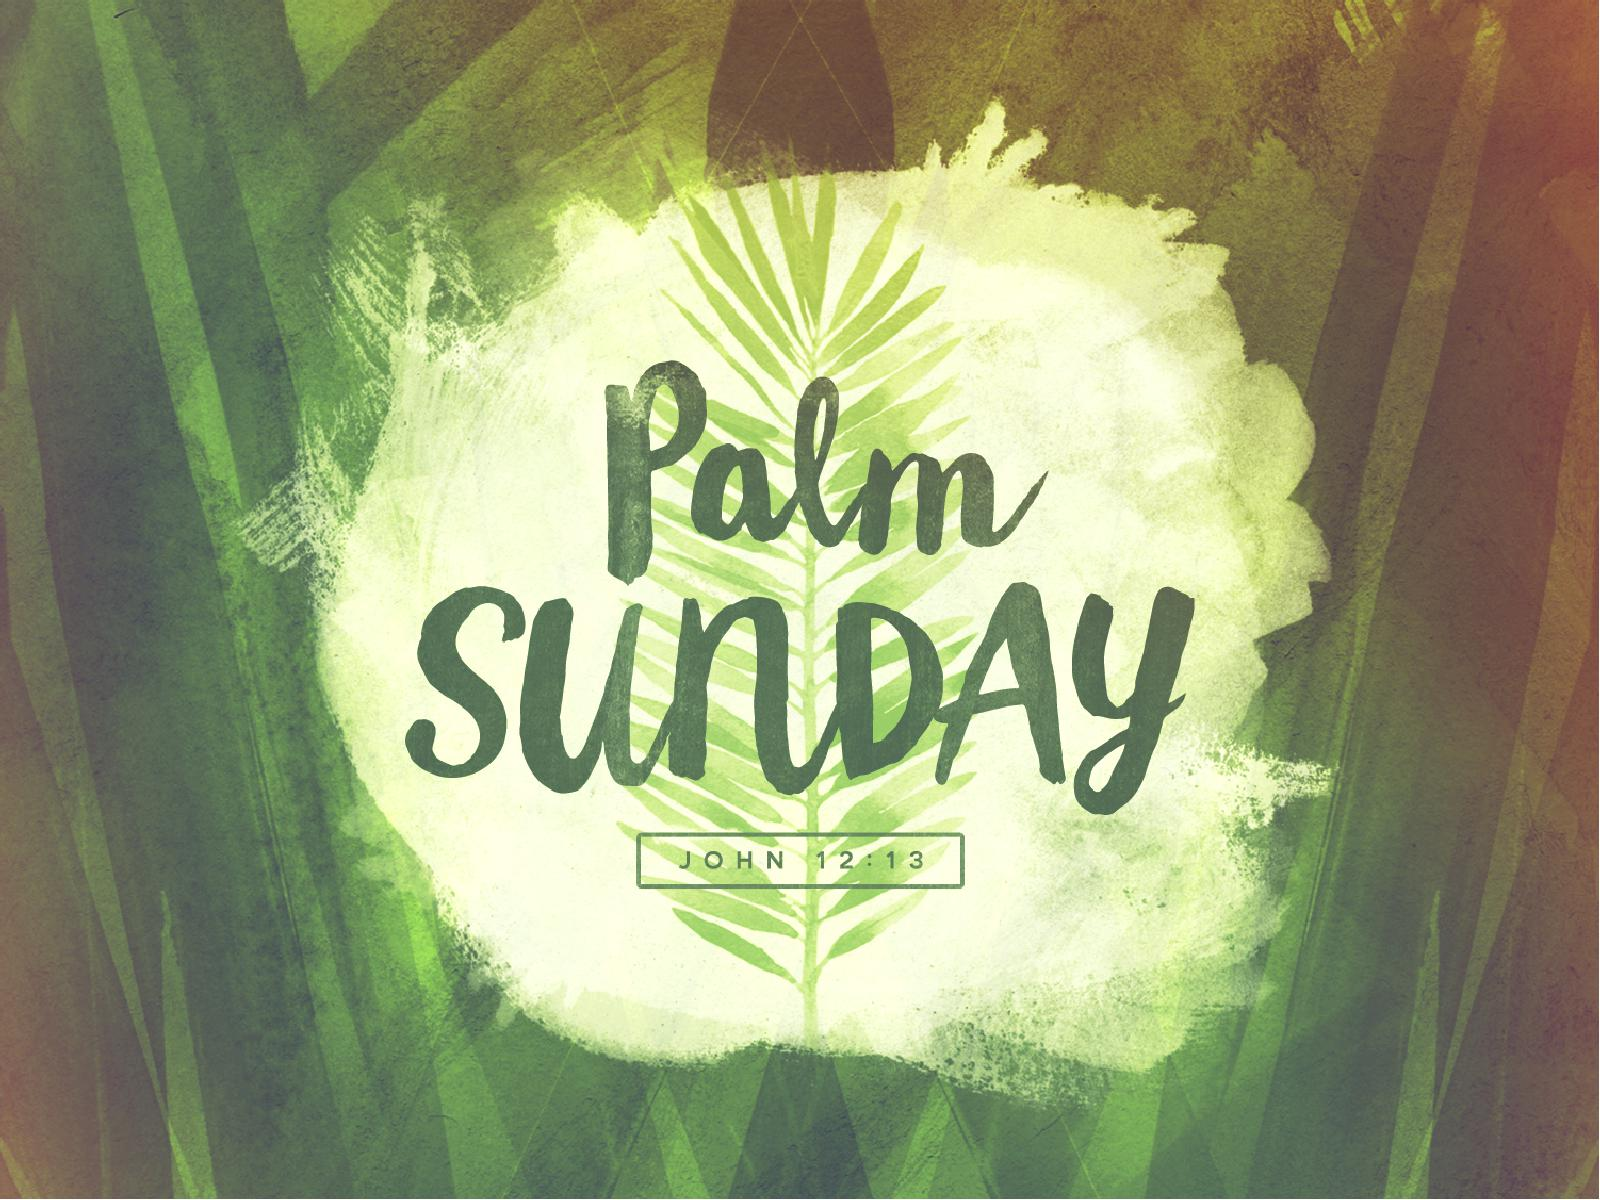 Palm Sunday Service at Heart of Longmont